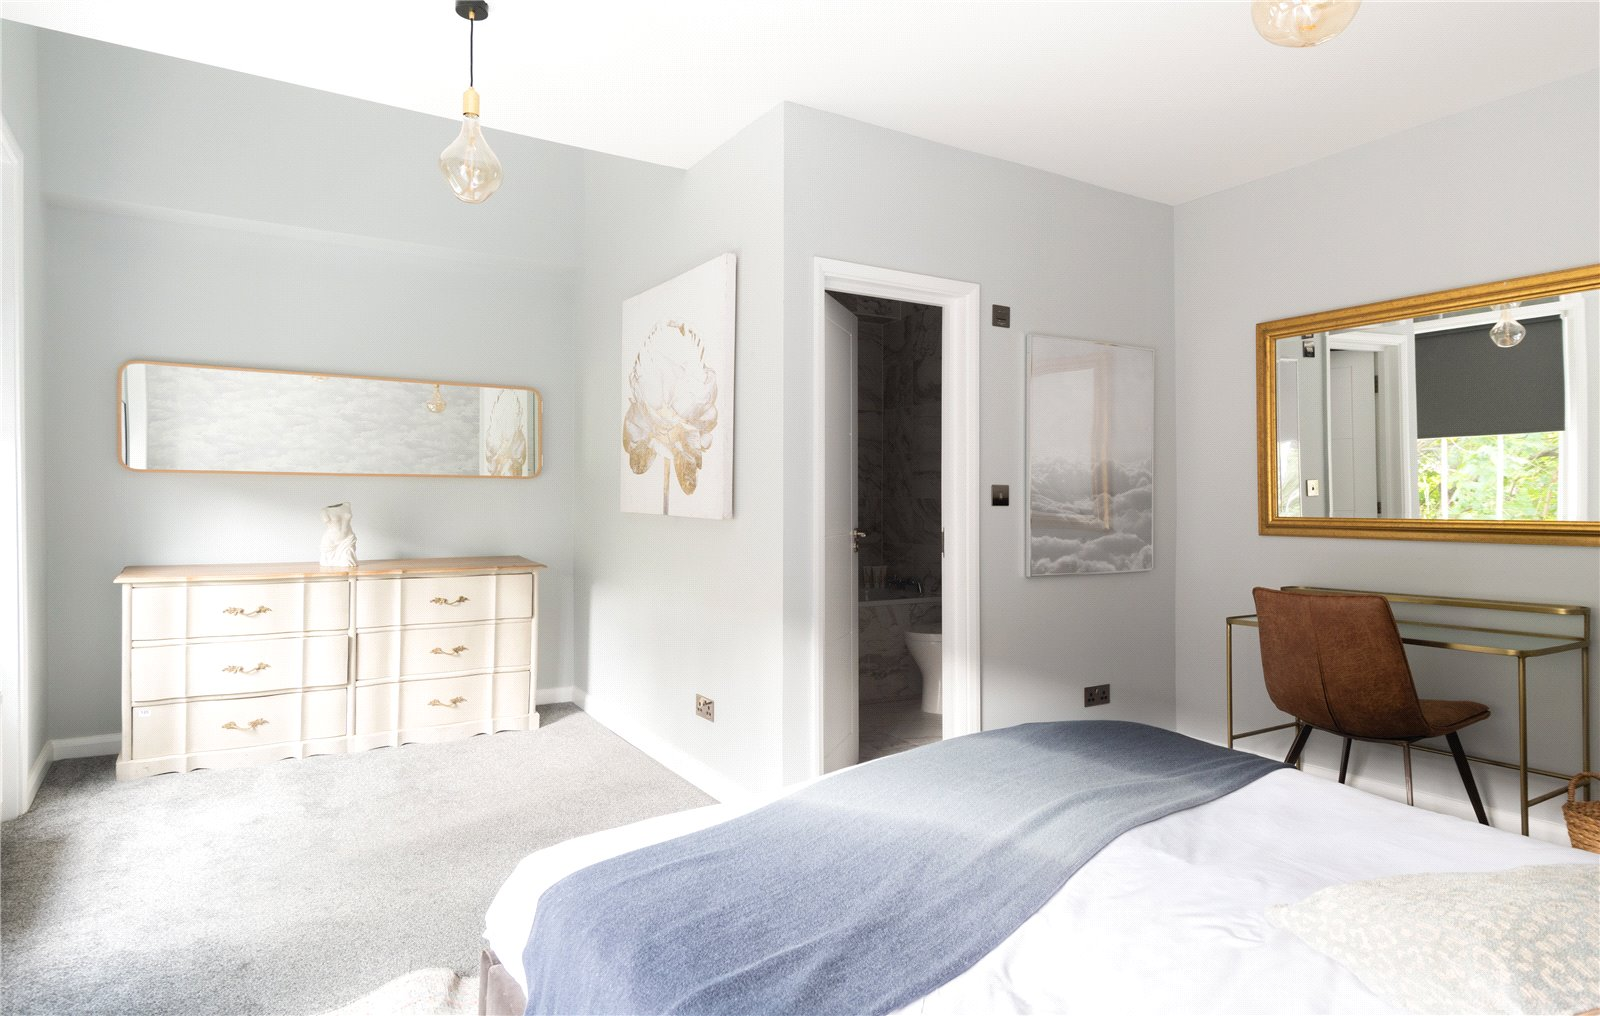 3 bed apartment for sale in Kentish Town, NW5 4DA  - Property Image 5